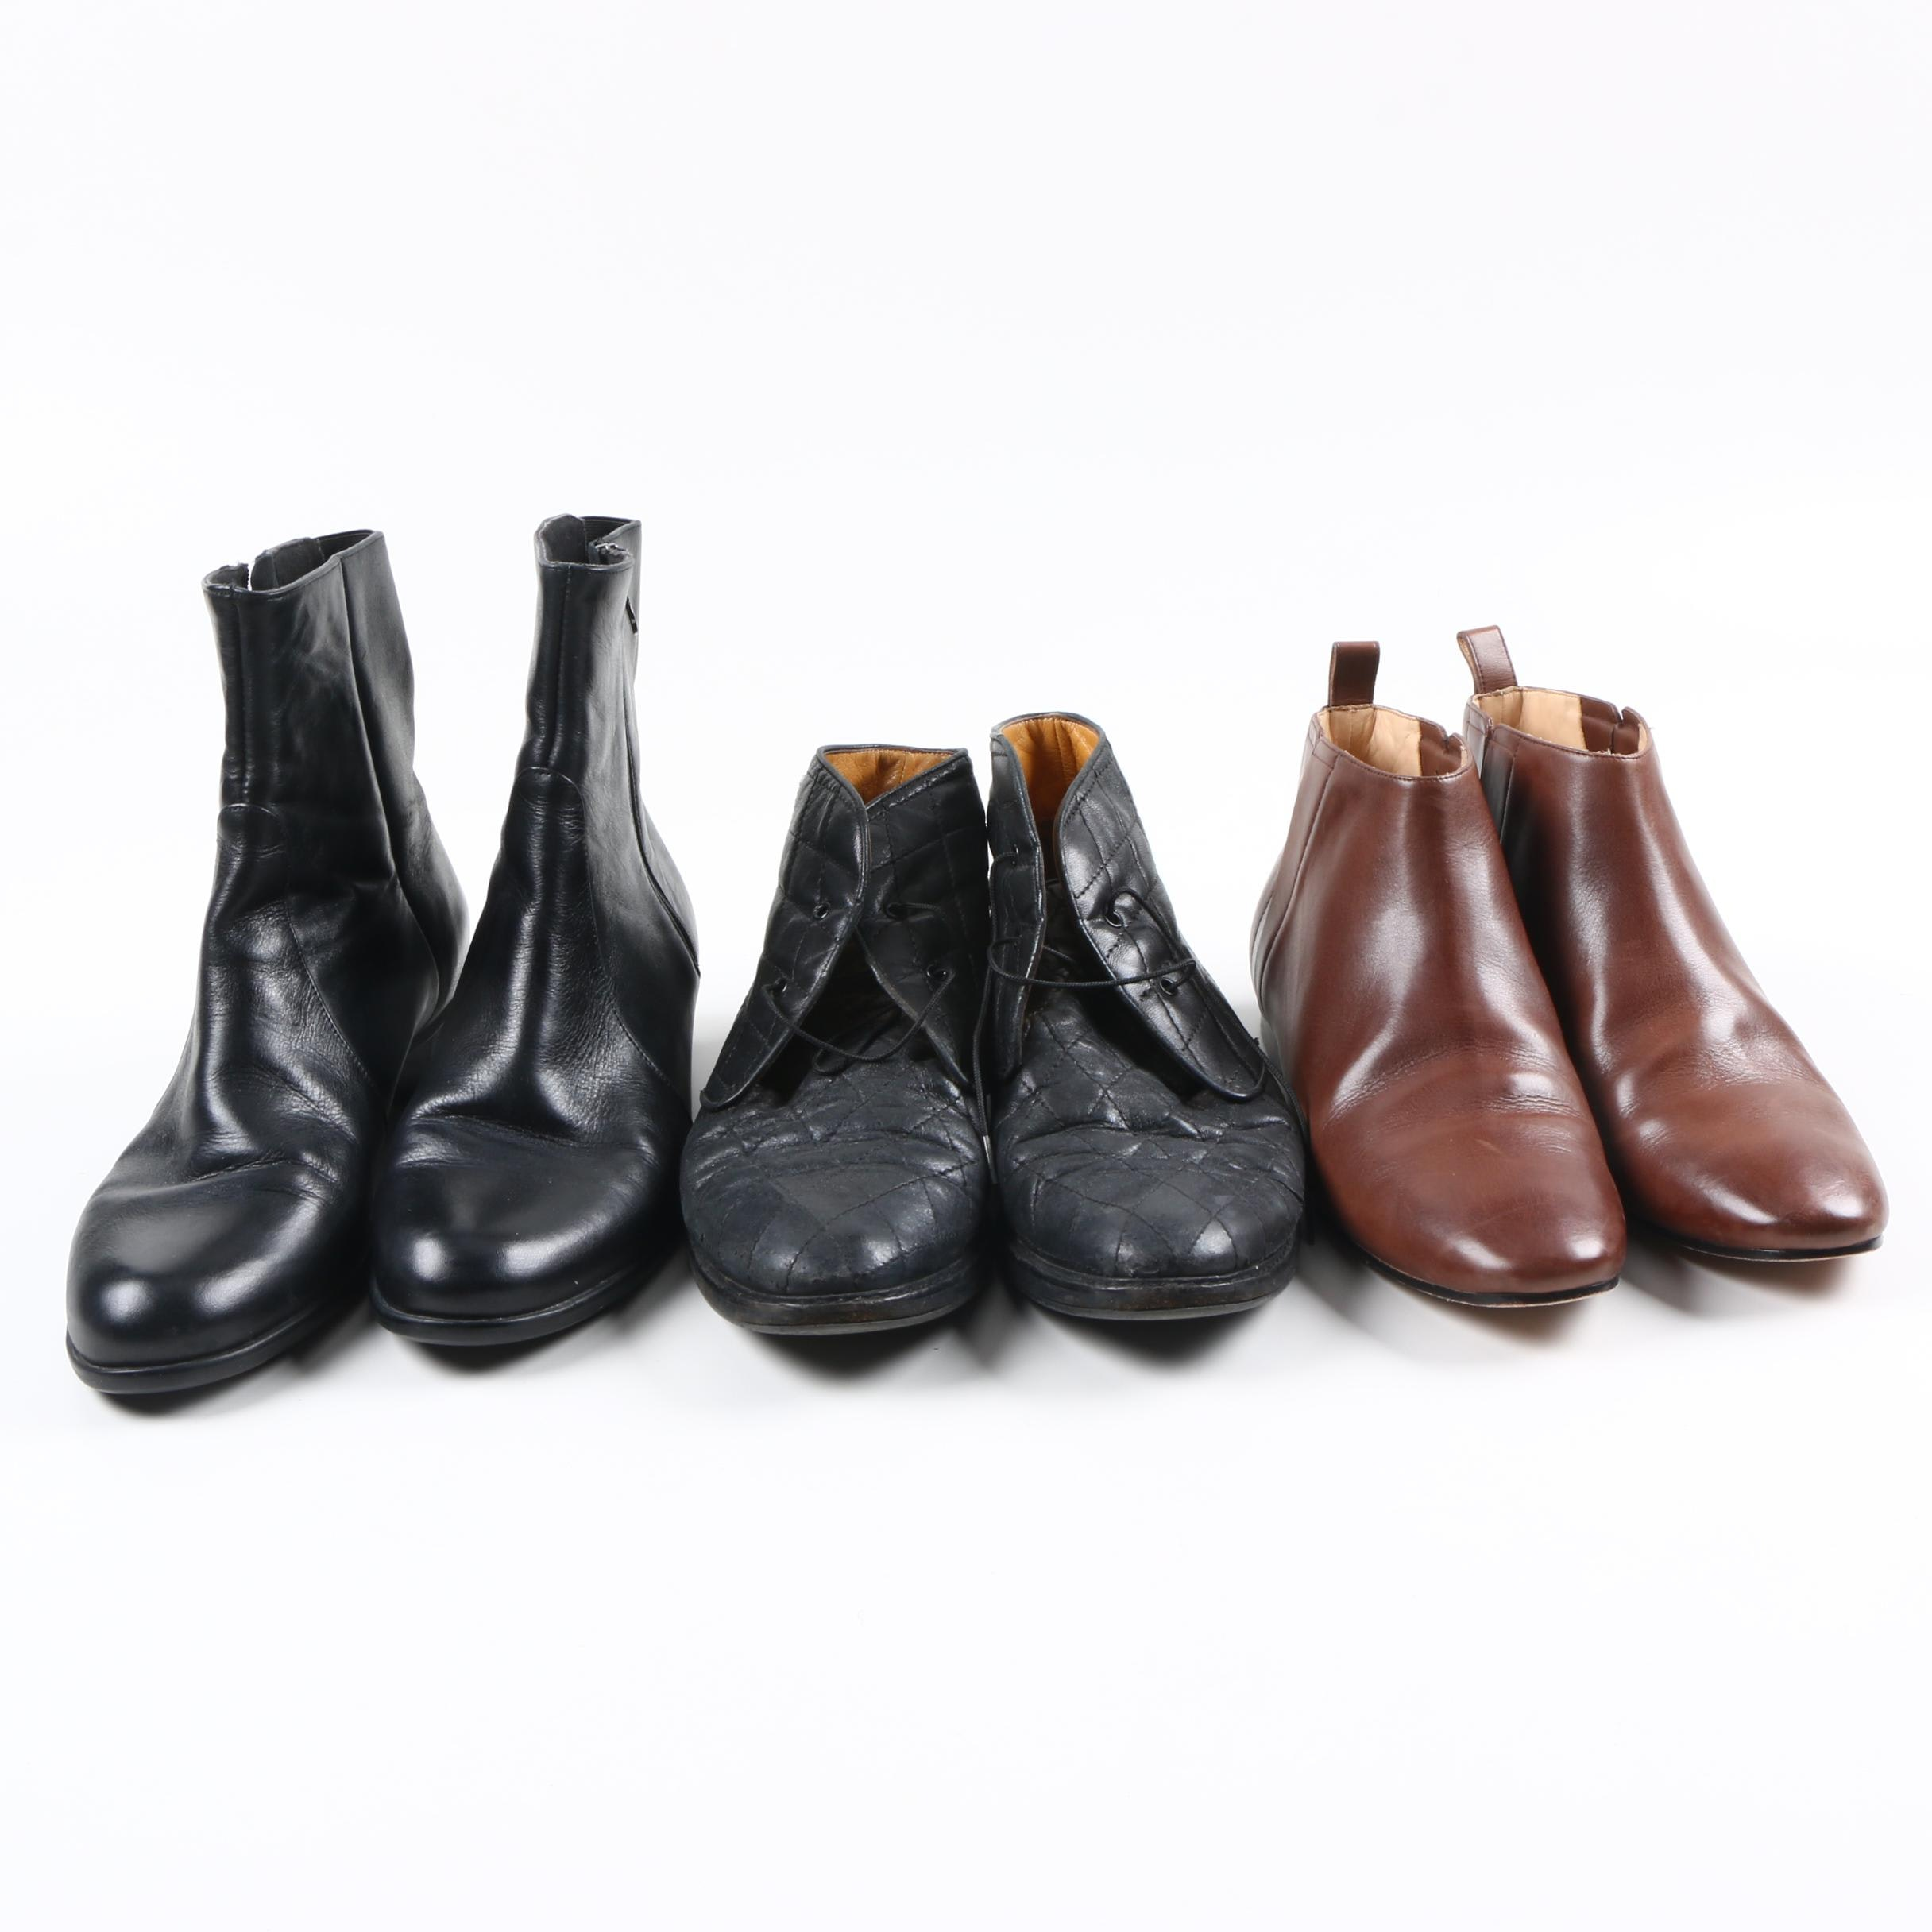 Three Pairs of Women's Booties Including Cole Haan